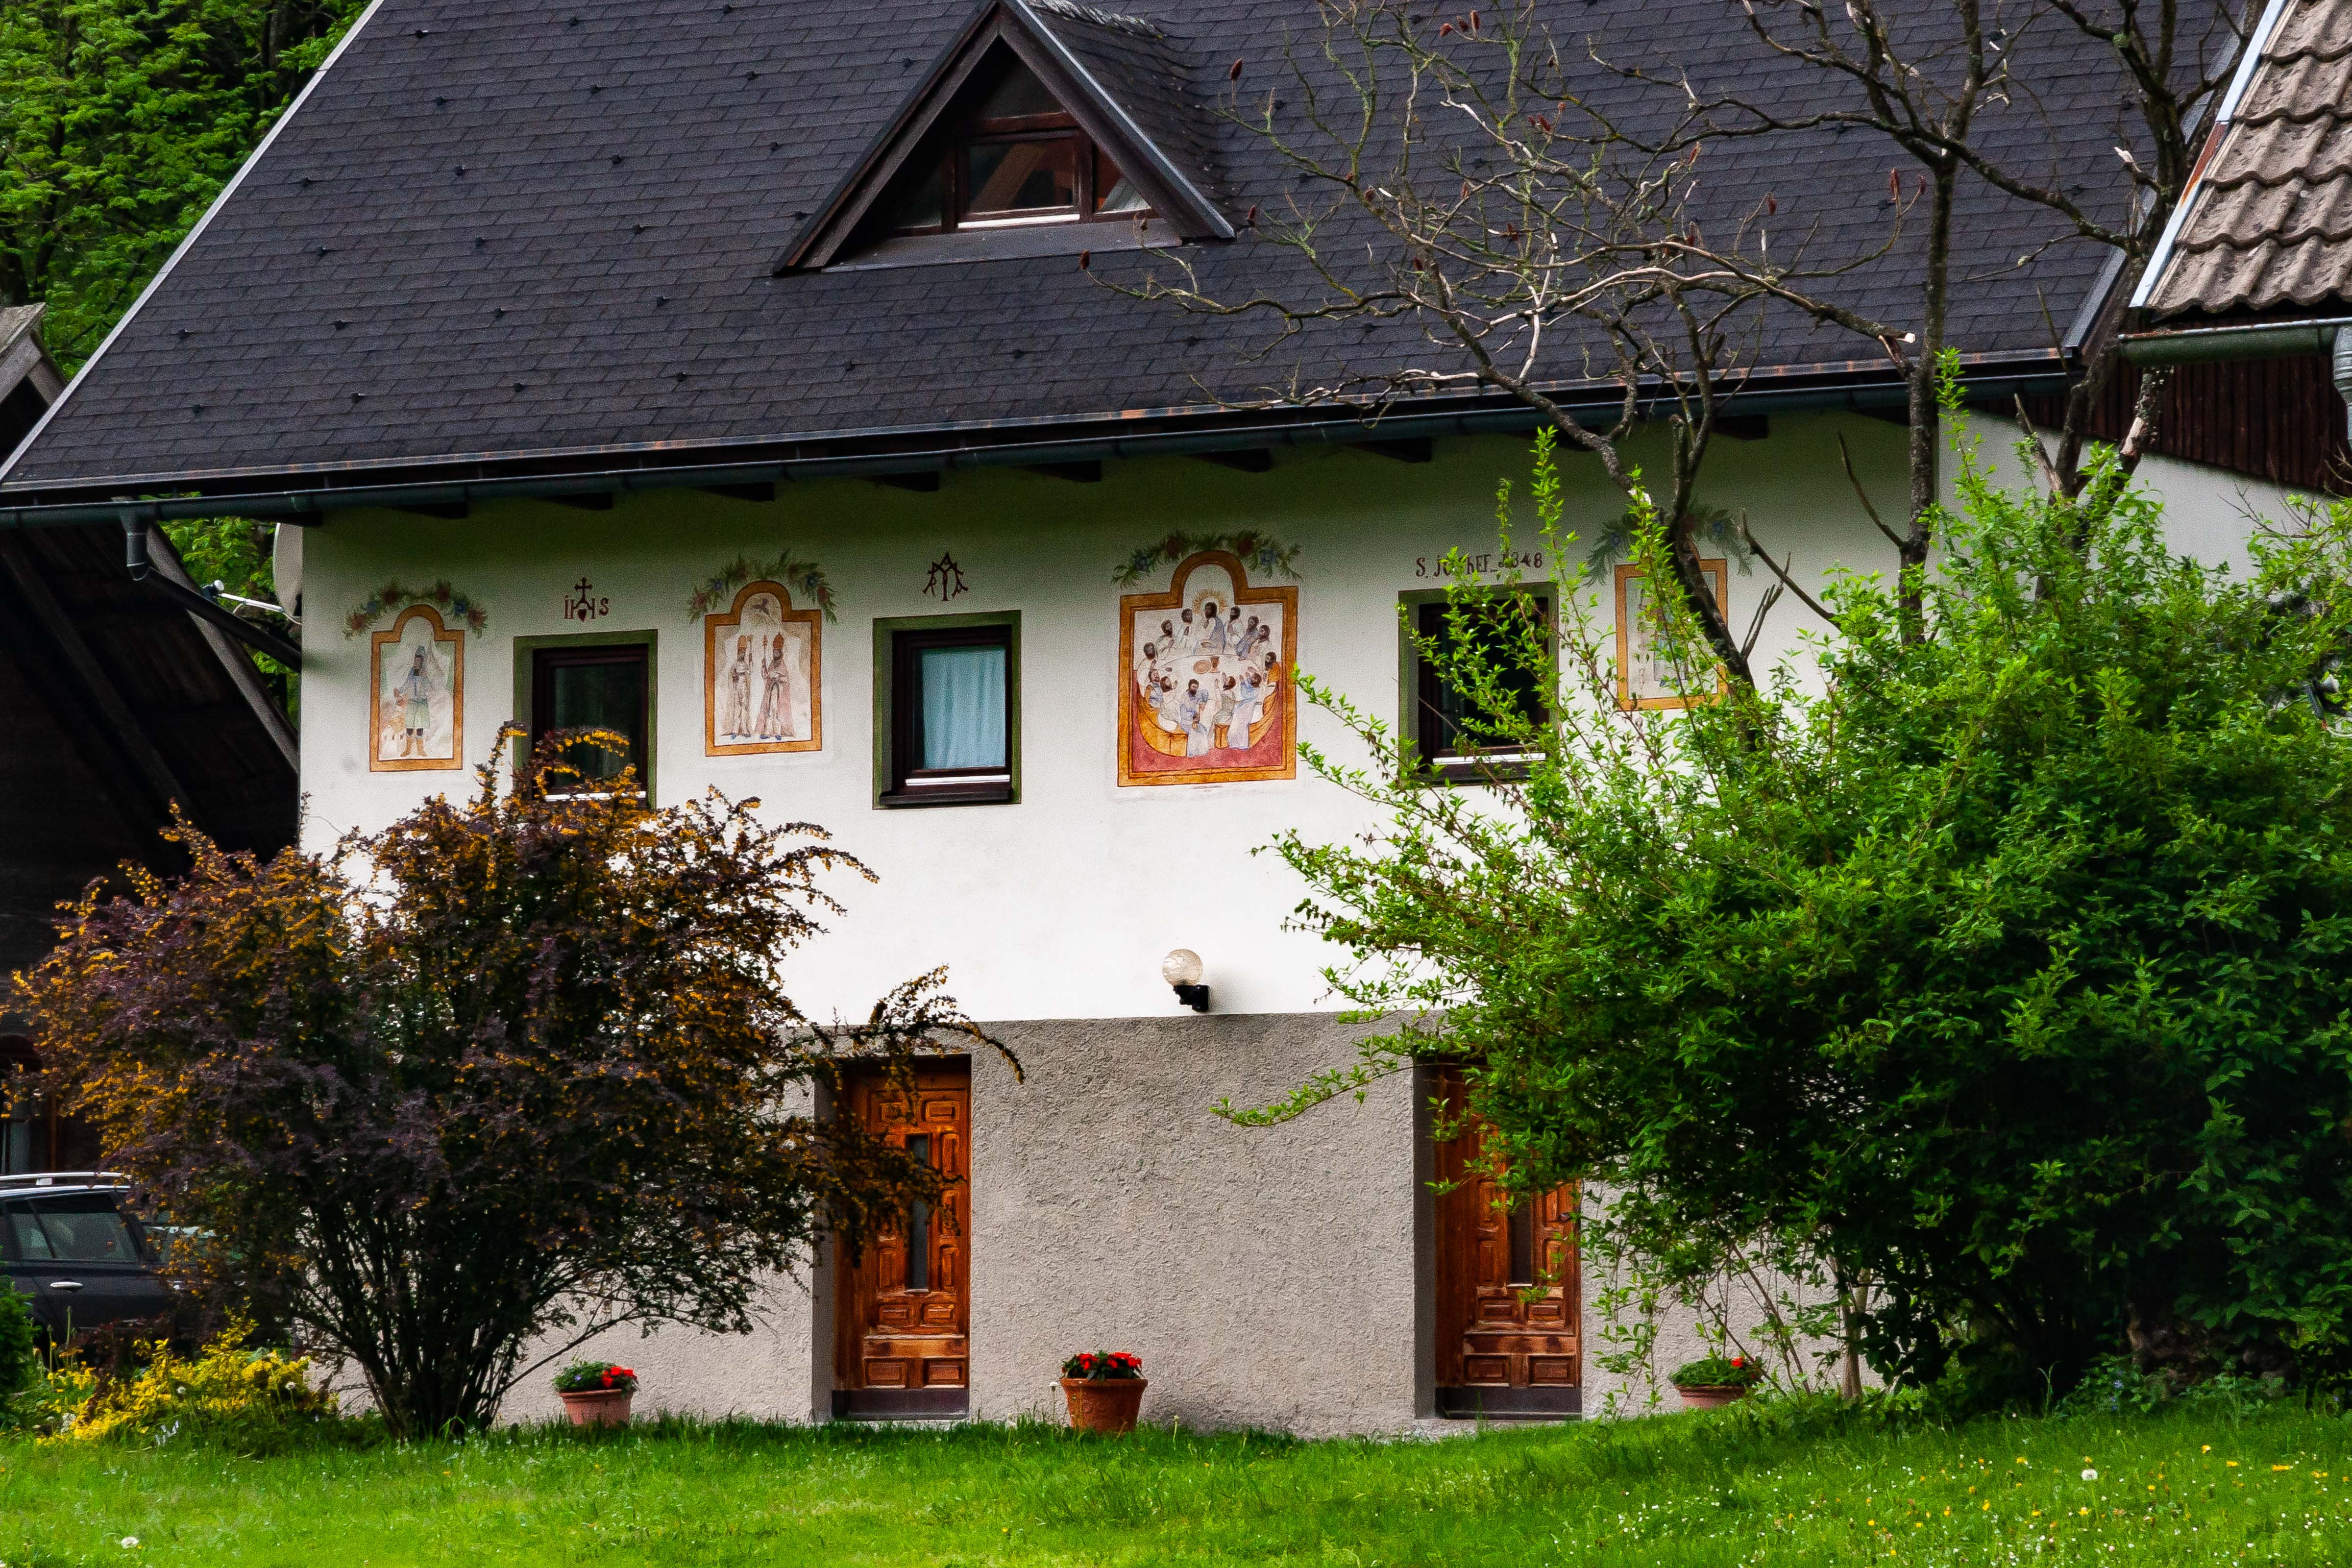 Slovenia, Solcava Prov, House With Wall Paintings, 2006, IMG 8391